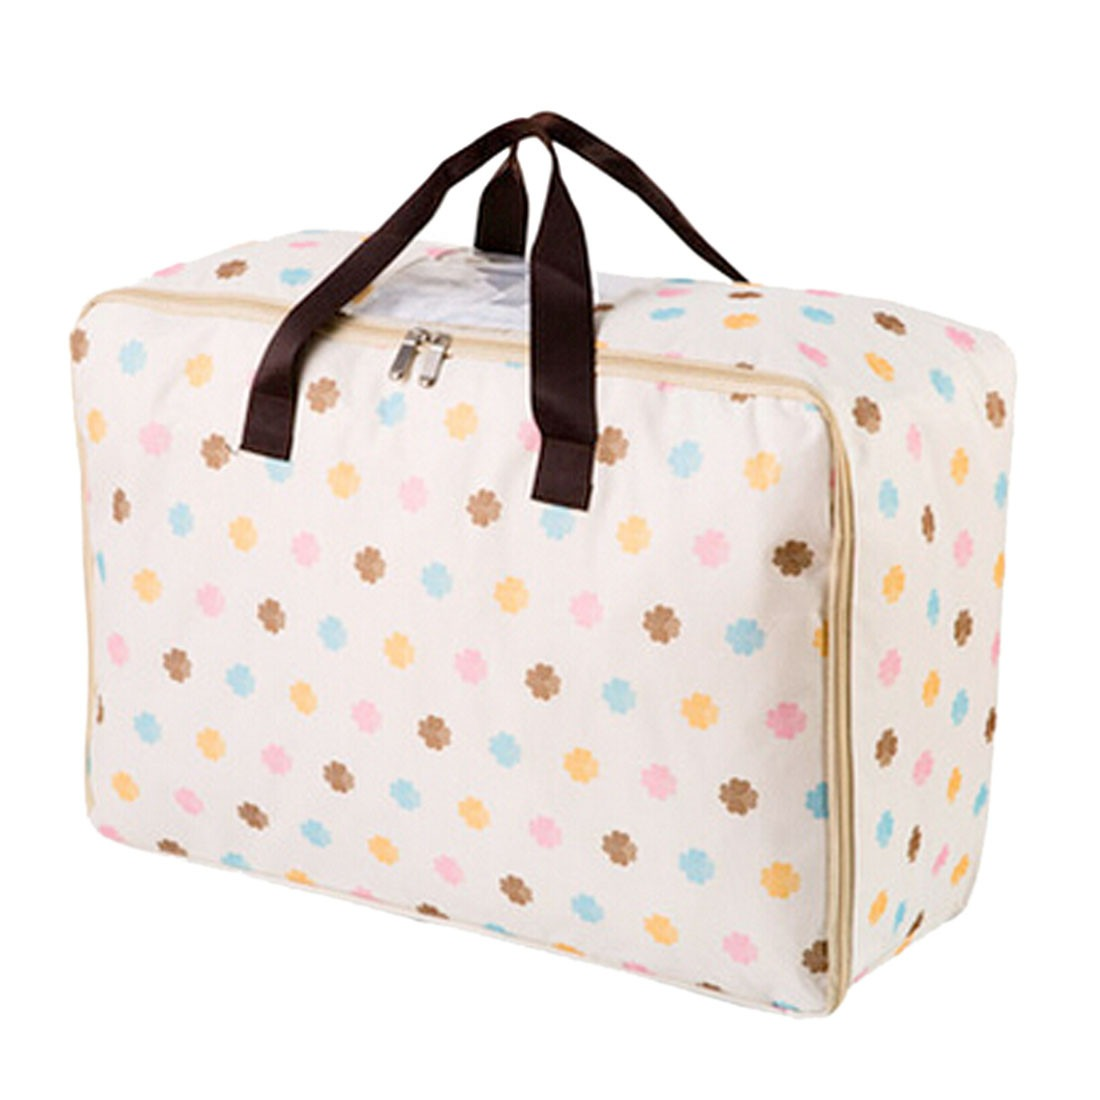 Clothing Quilt Organizer Container Bag Tote Window Printed Storage Boxes